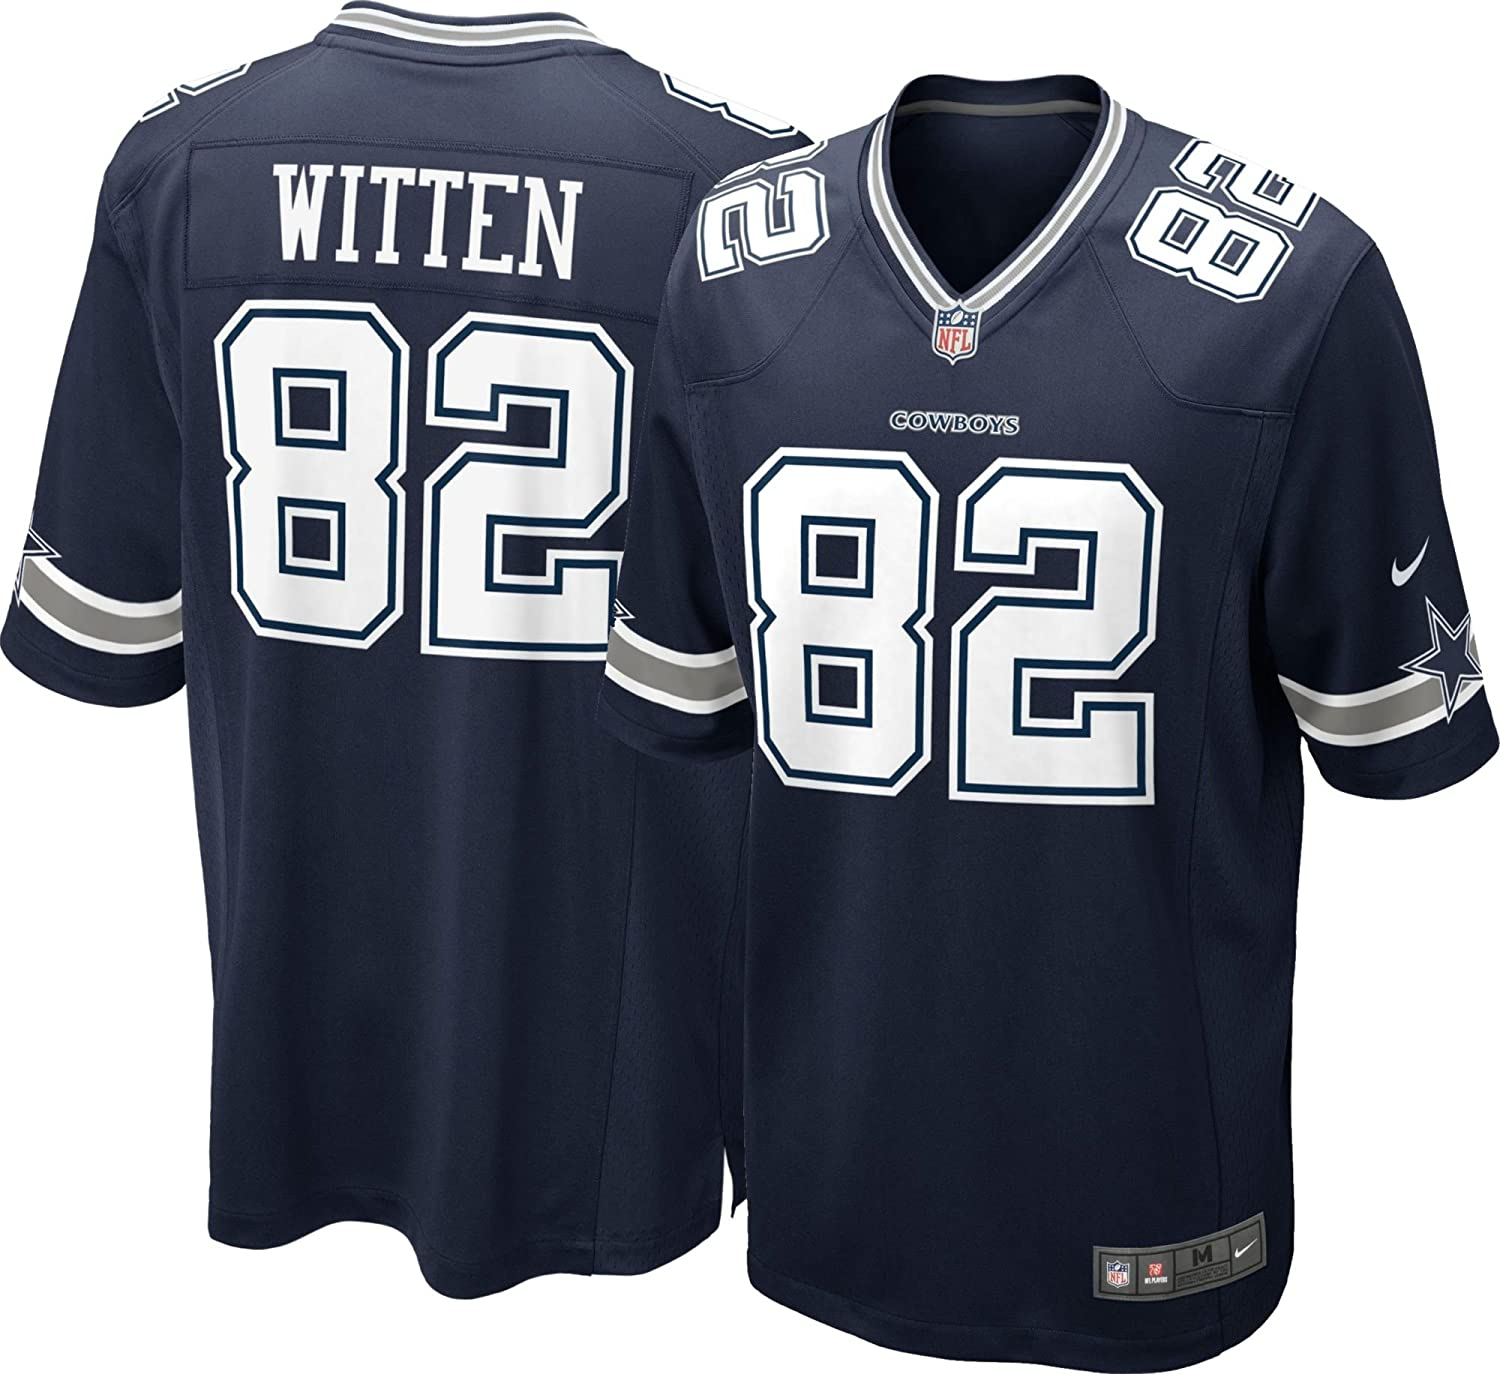 da9f3e99116 Amazon.com : Dallas Cowboys Youth Jason Witten #82 Game Replica Jersey  (Youth Sizes) : Clothing